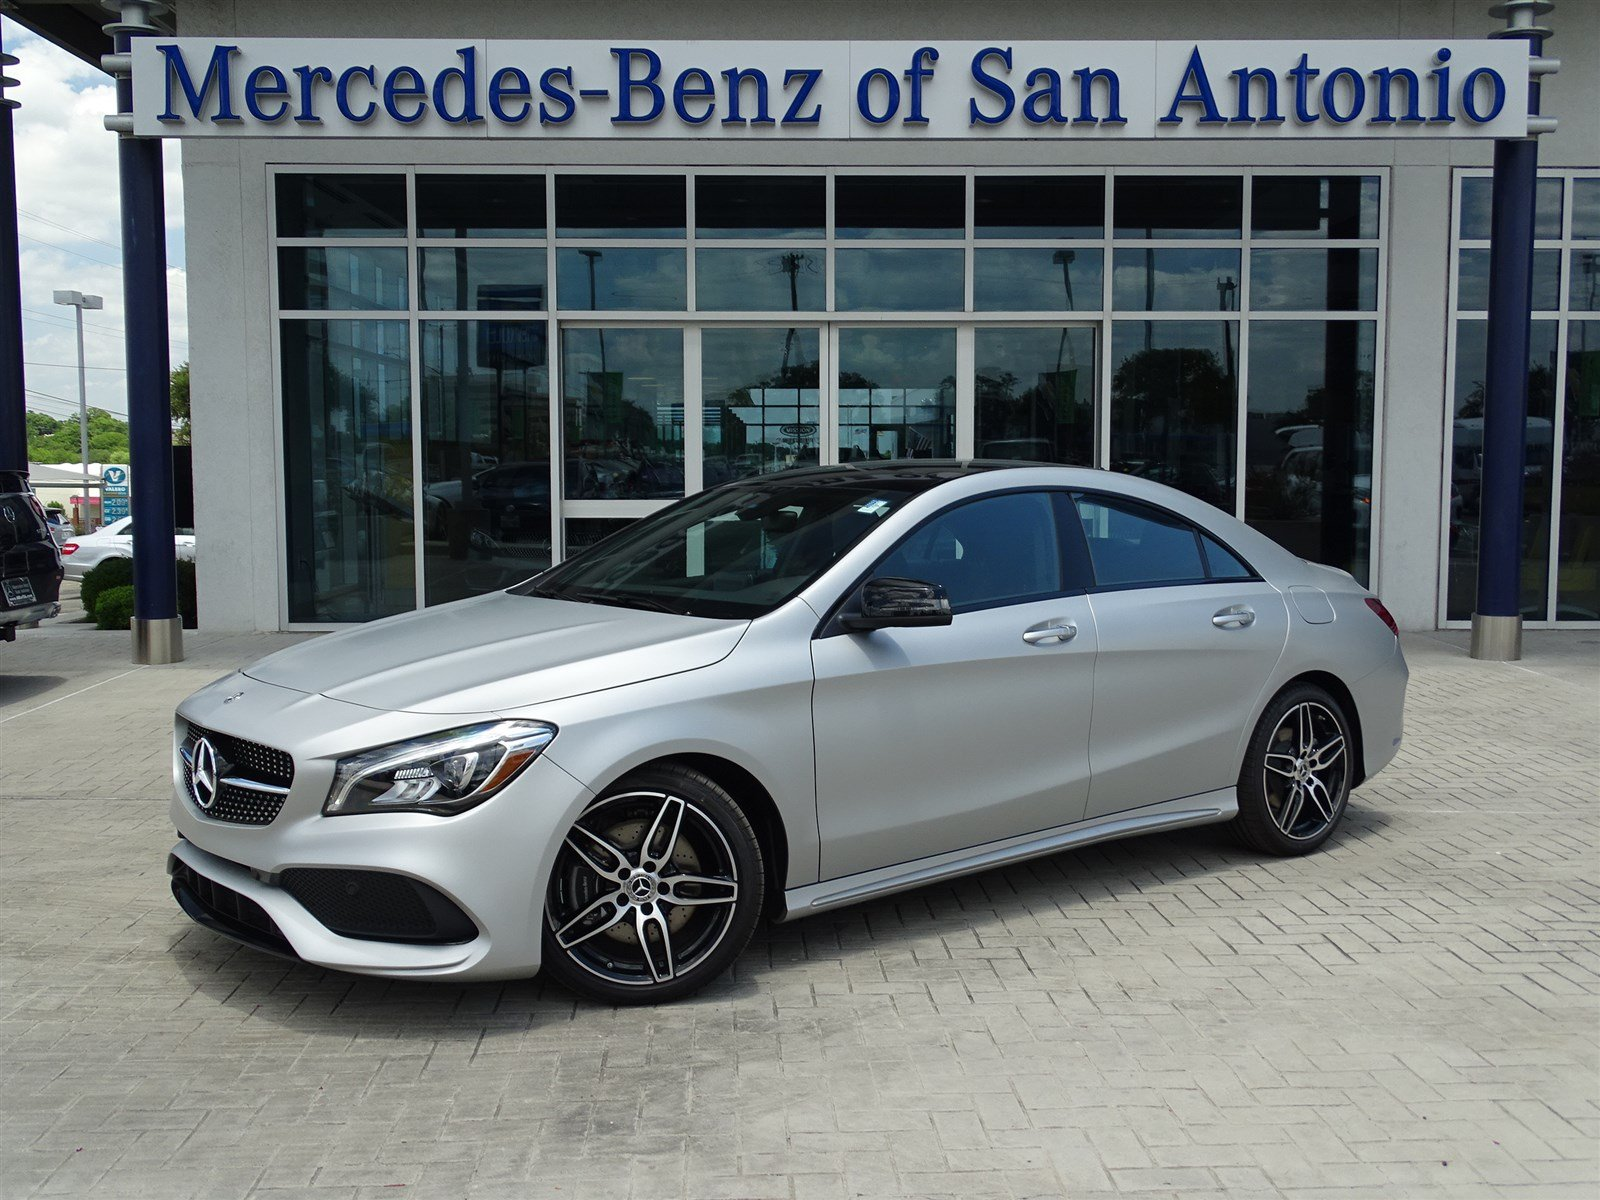 new 2018 mercedes benz cla cla 250 coupe in san antonio n15969 mercedes benz of san antonio. Black Bedroom Furniture Sets. Home Design Ideas